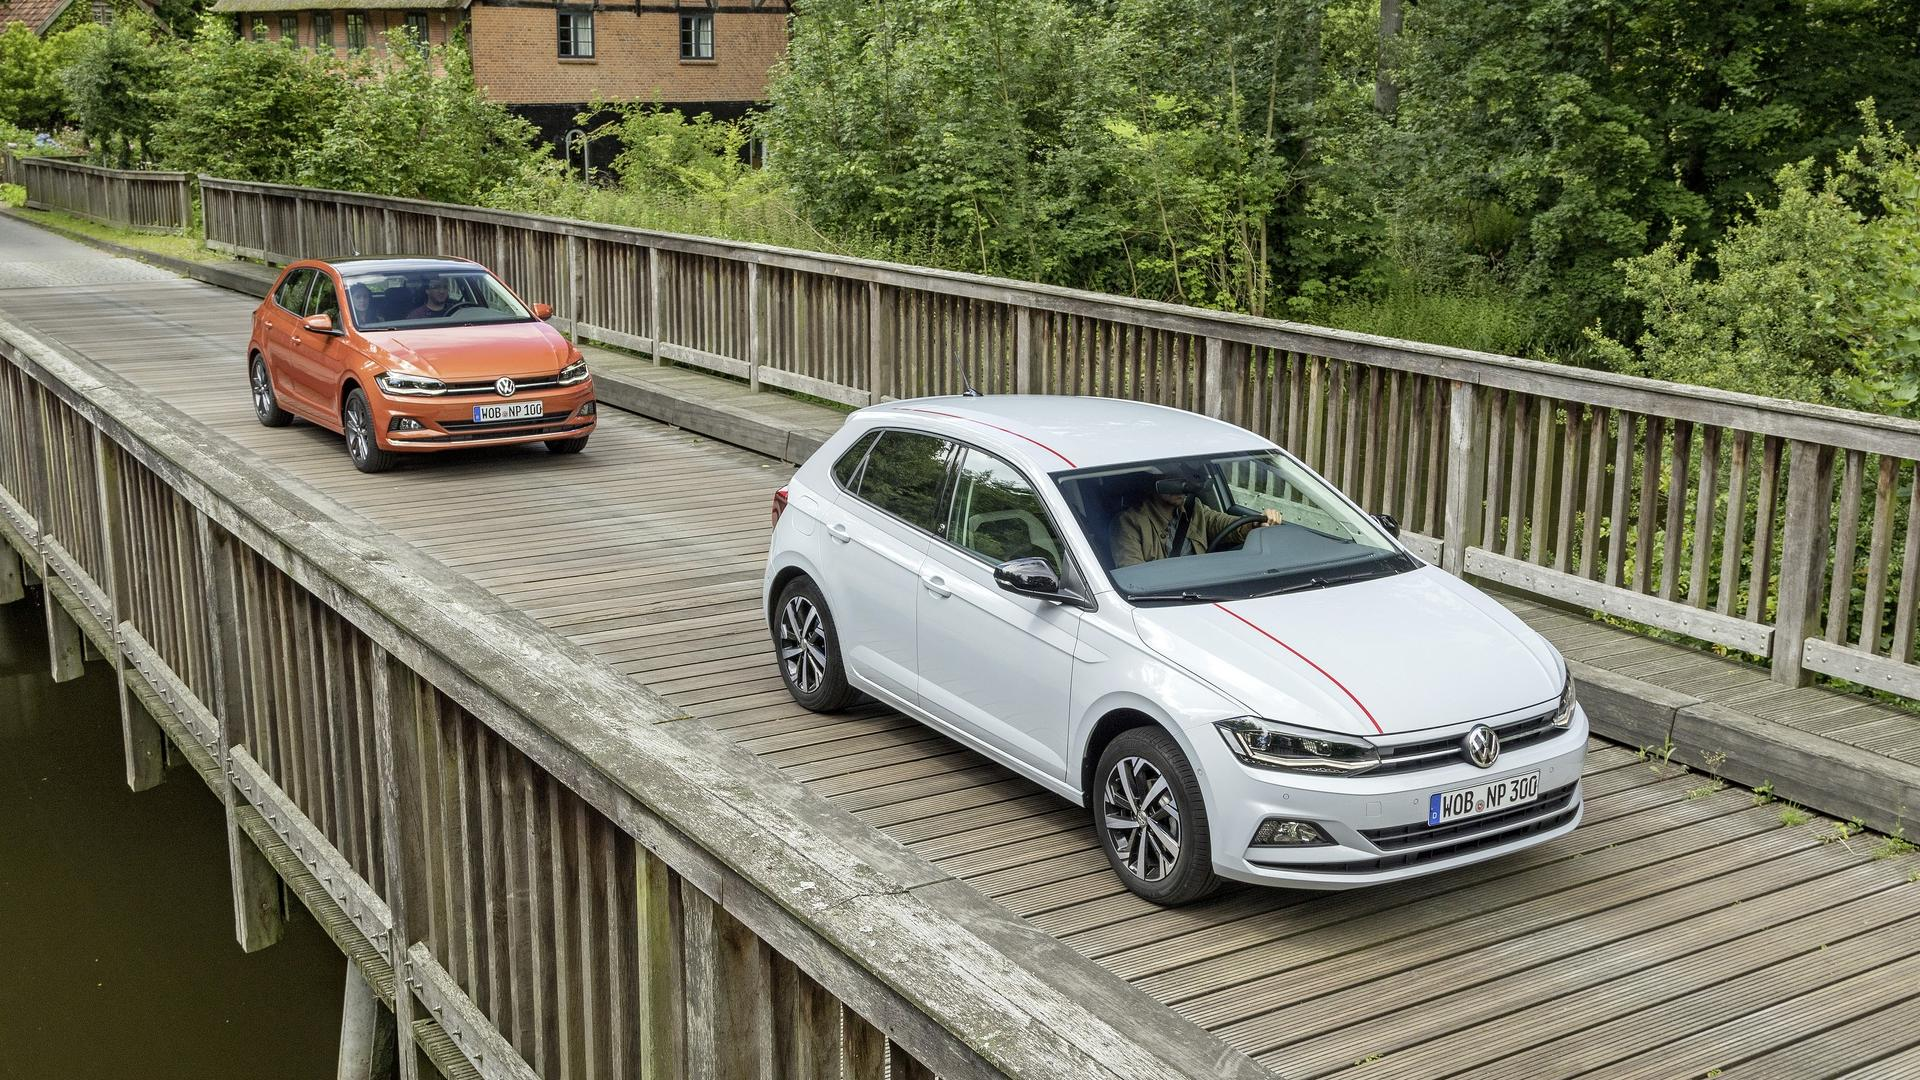 2018 Vw Polo Detailed In New Videos Extended Gallery 150